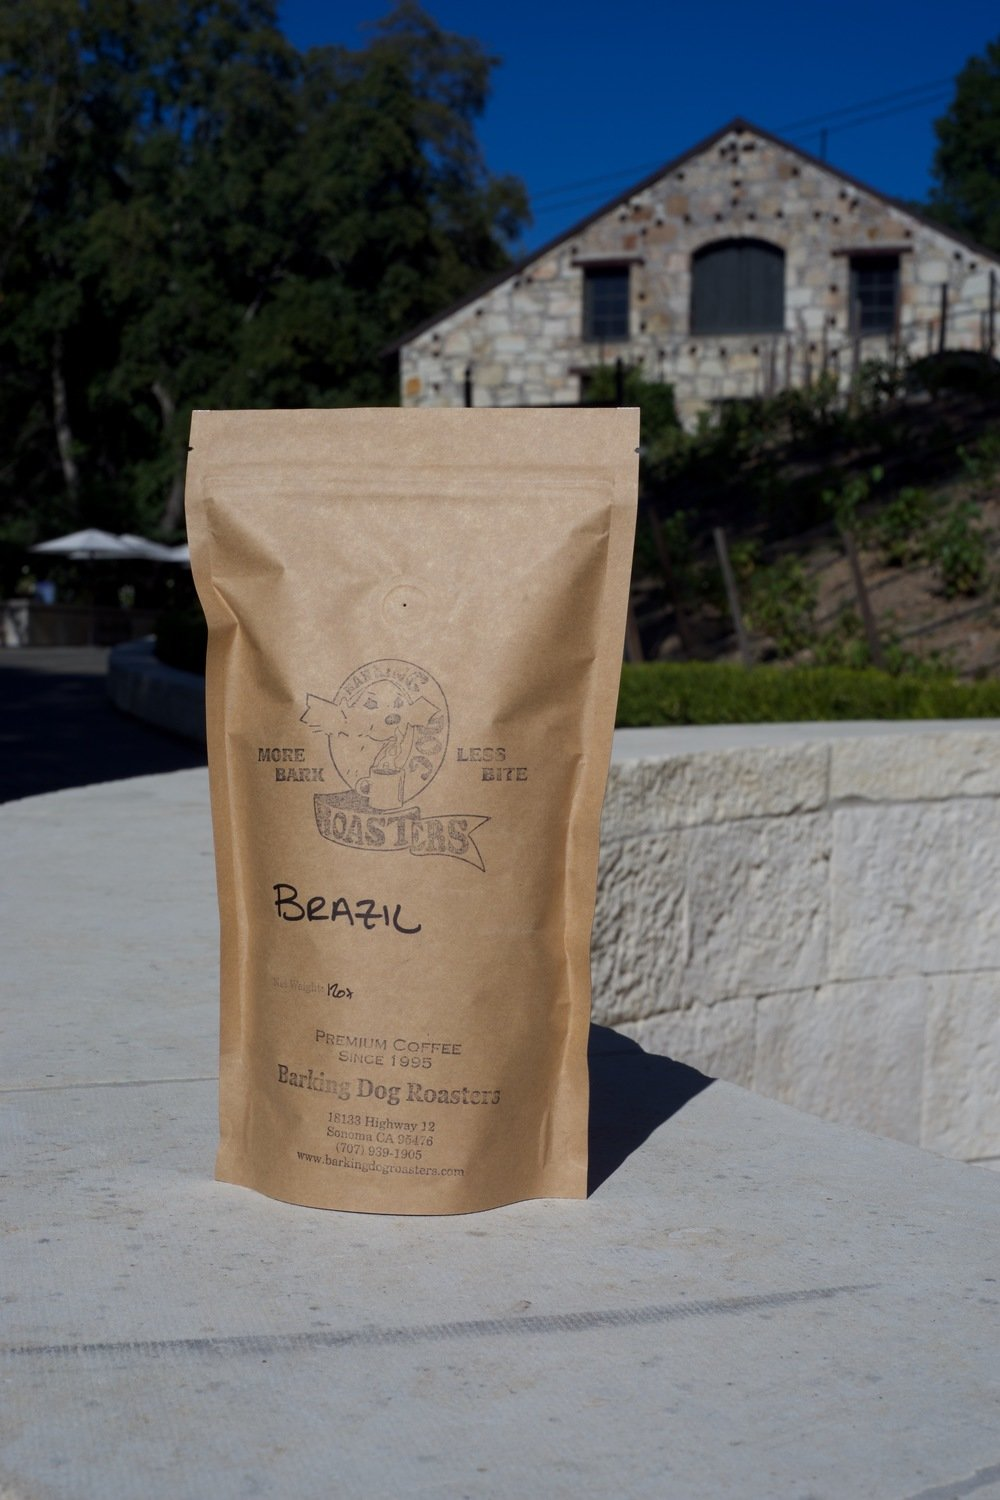 Brazil - Dulce - Barking Dog Roasters